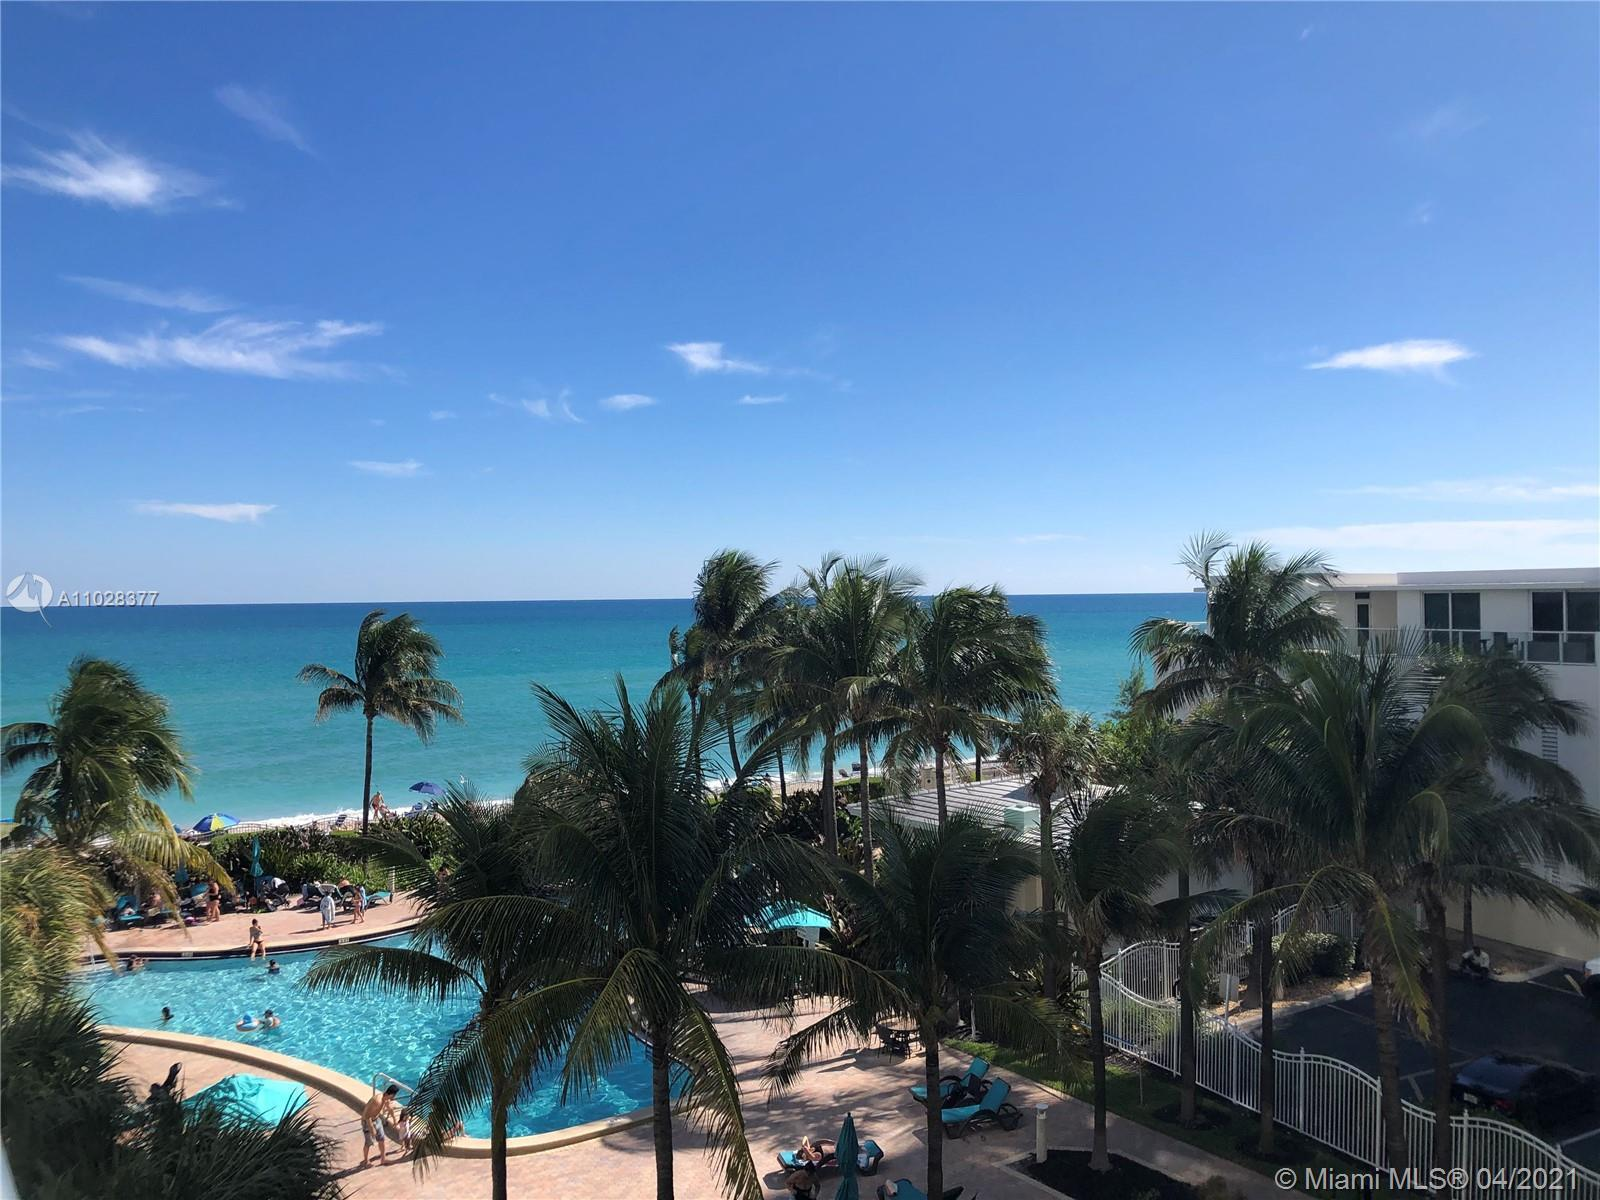 Resort Style Condo on Beautiful Hollywood Beach. Nicely updated & Turn key ready for the investor. 4